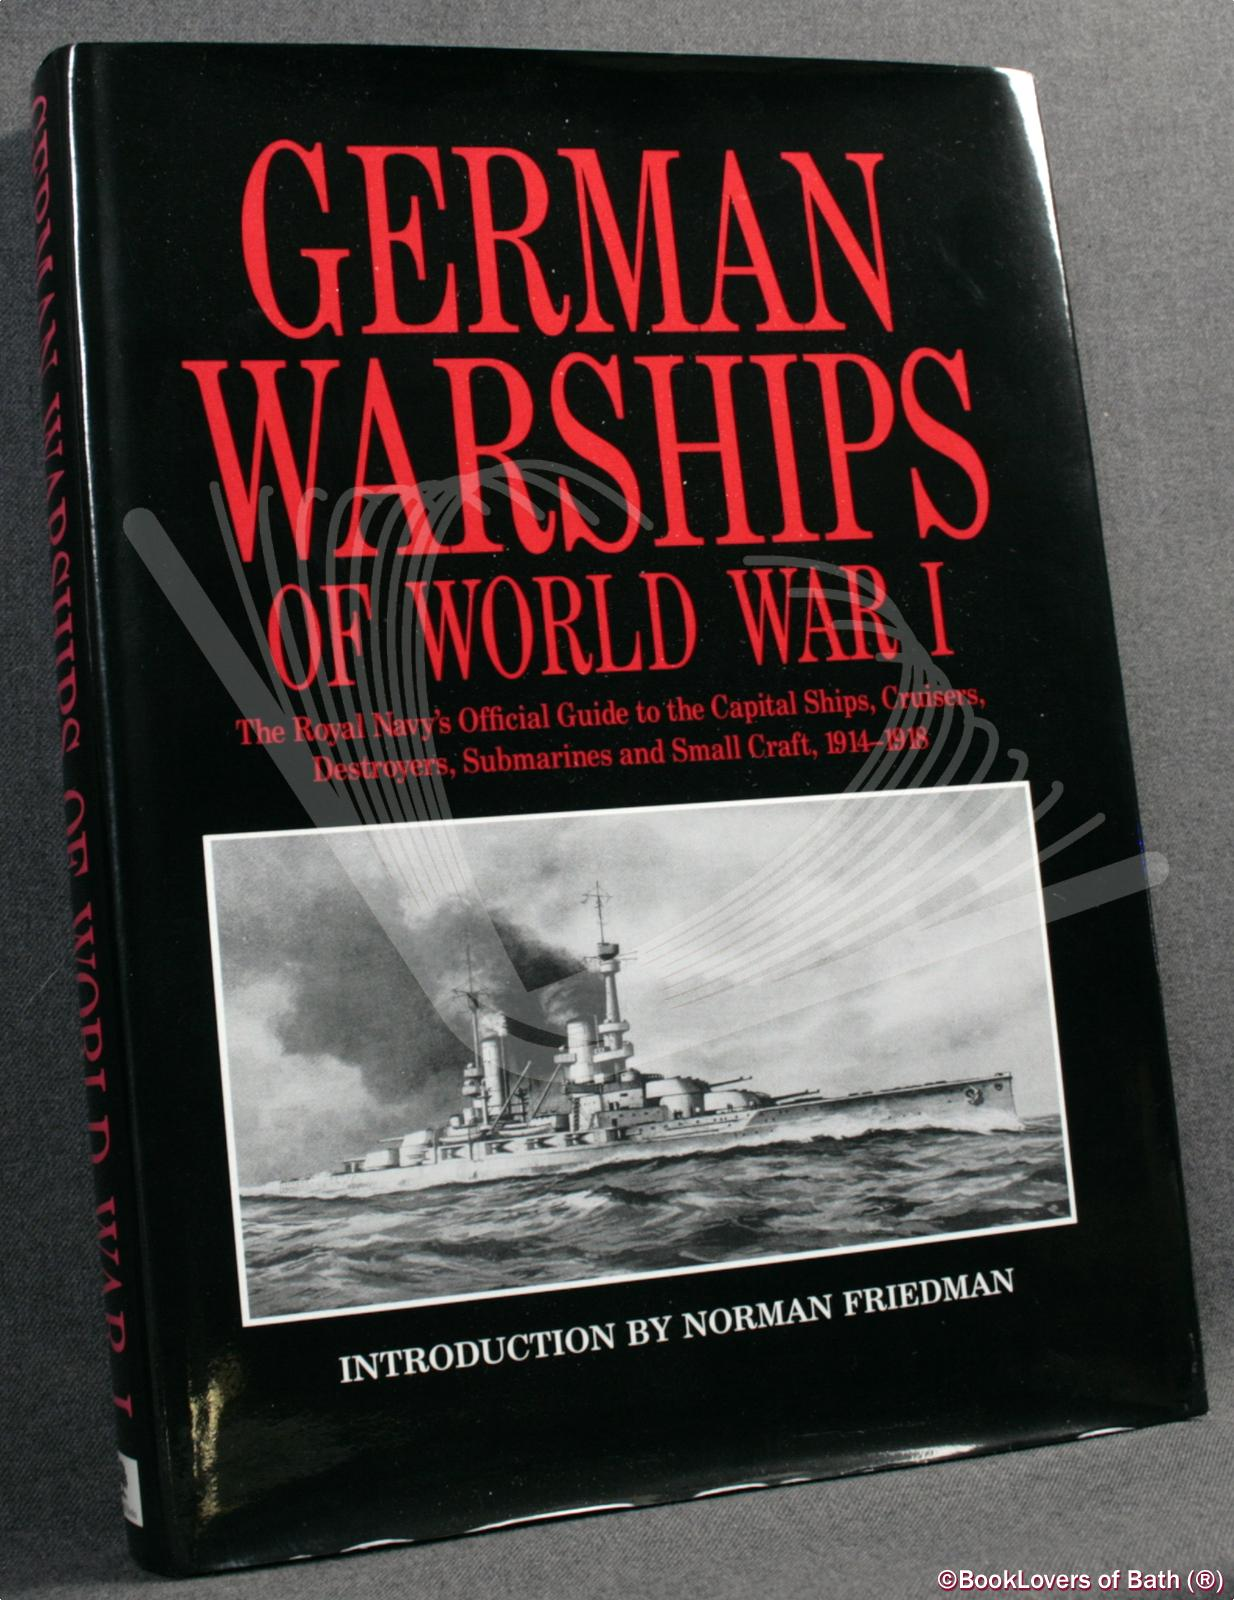 German Warships of World War 1: The Royal Navy's Official Guide to Capital Ships, Cruisers, Destroyers, Submarines and Small Craft - Anon.